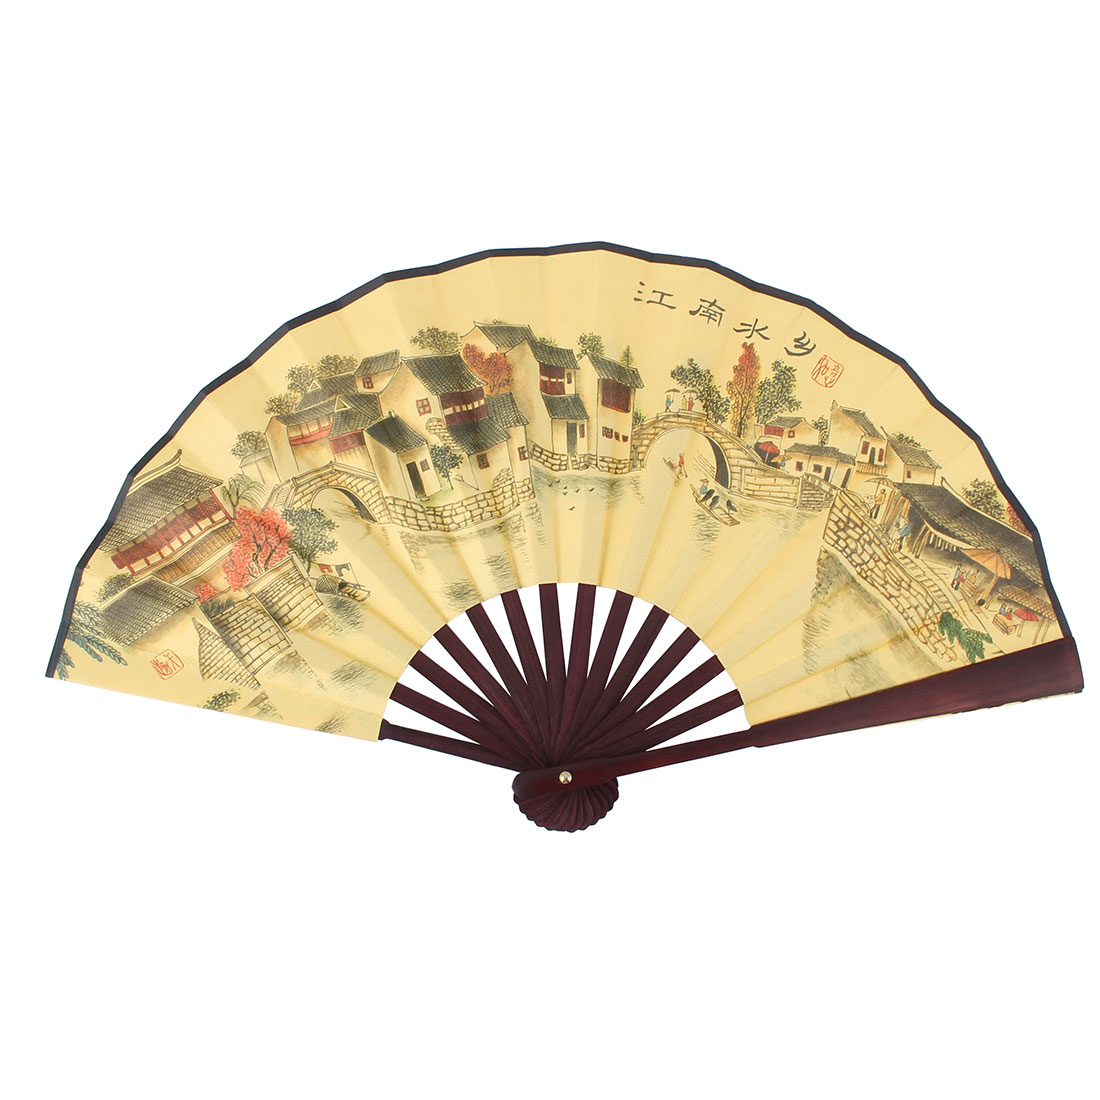 Bamboo Frame Poetry Chinese Landscape Painting Straight Rod Handheld Folding Fan